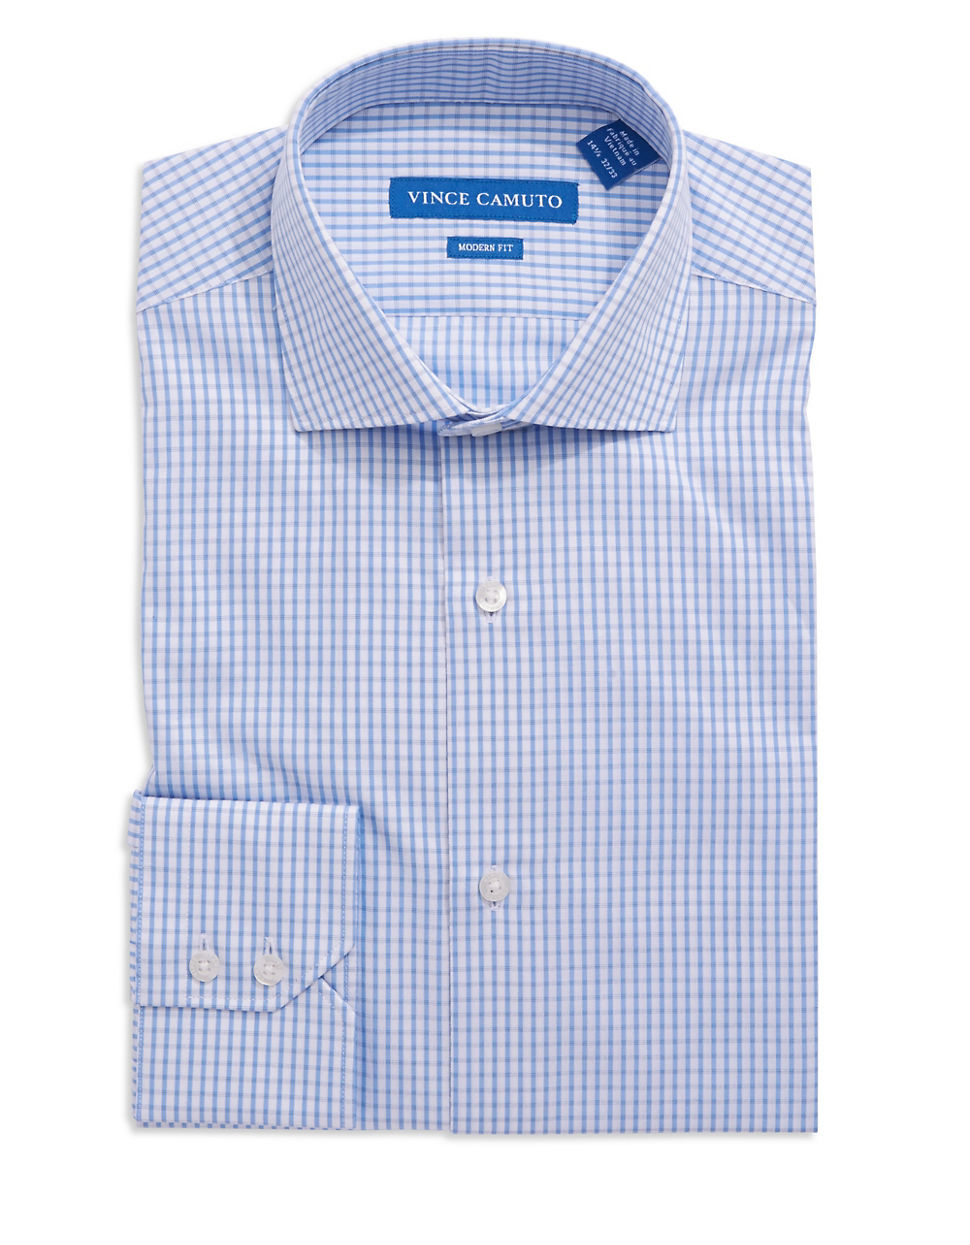 Vince Camuto Modern Fit Checkered Dress Shirt In Blue For